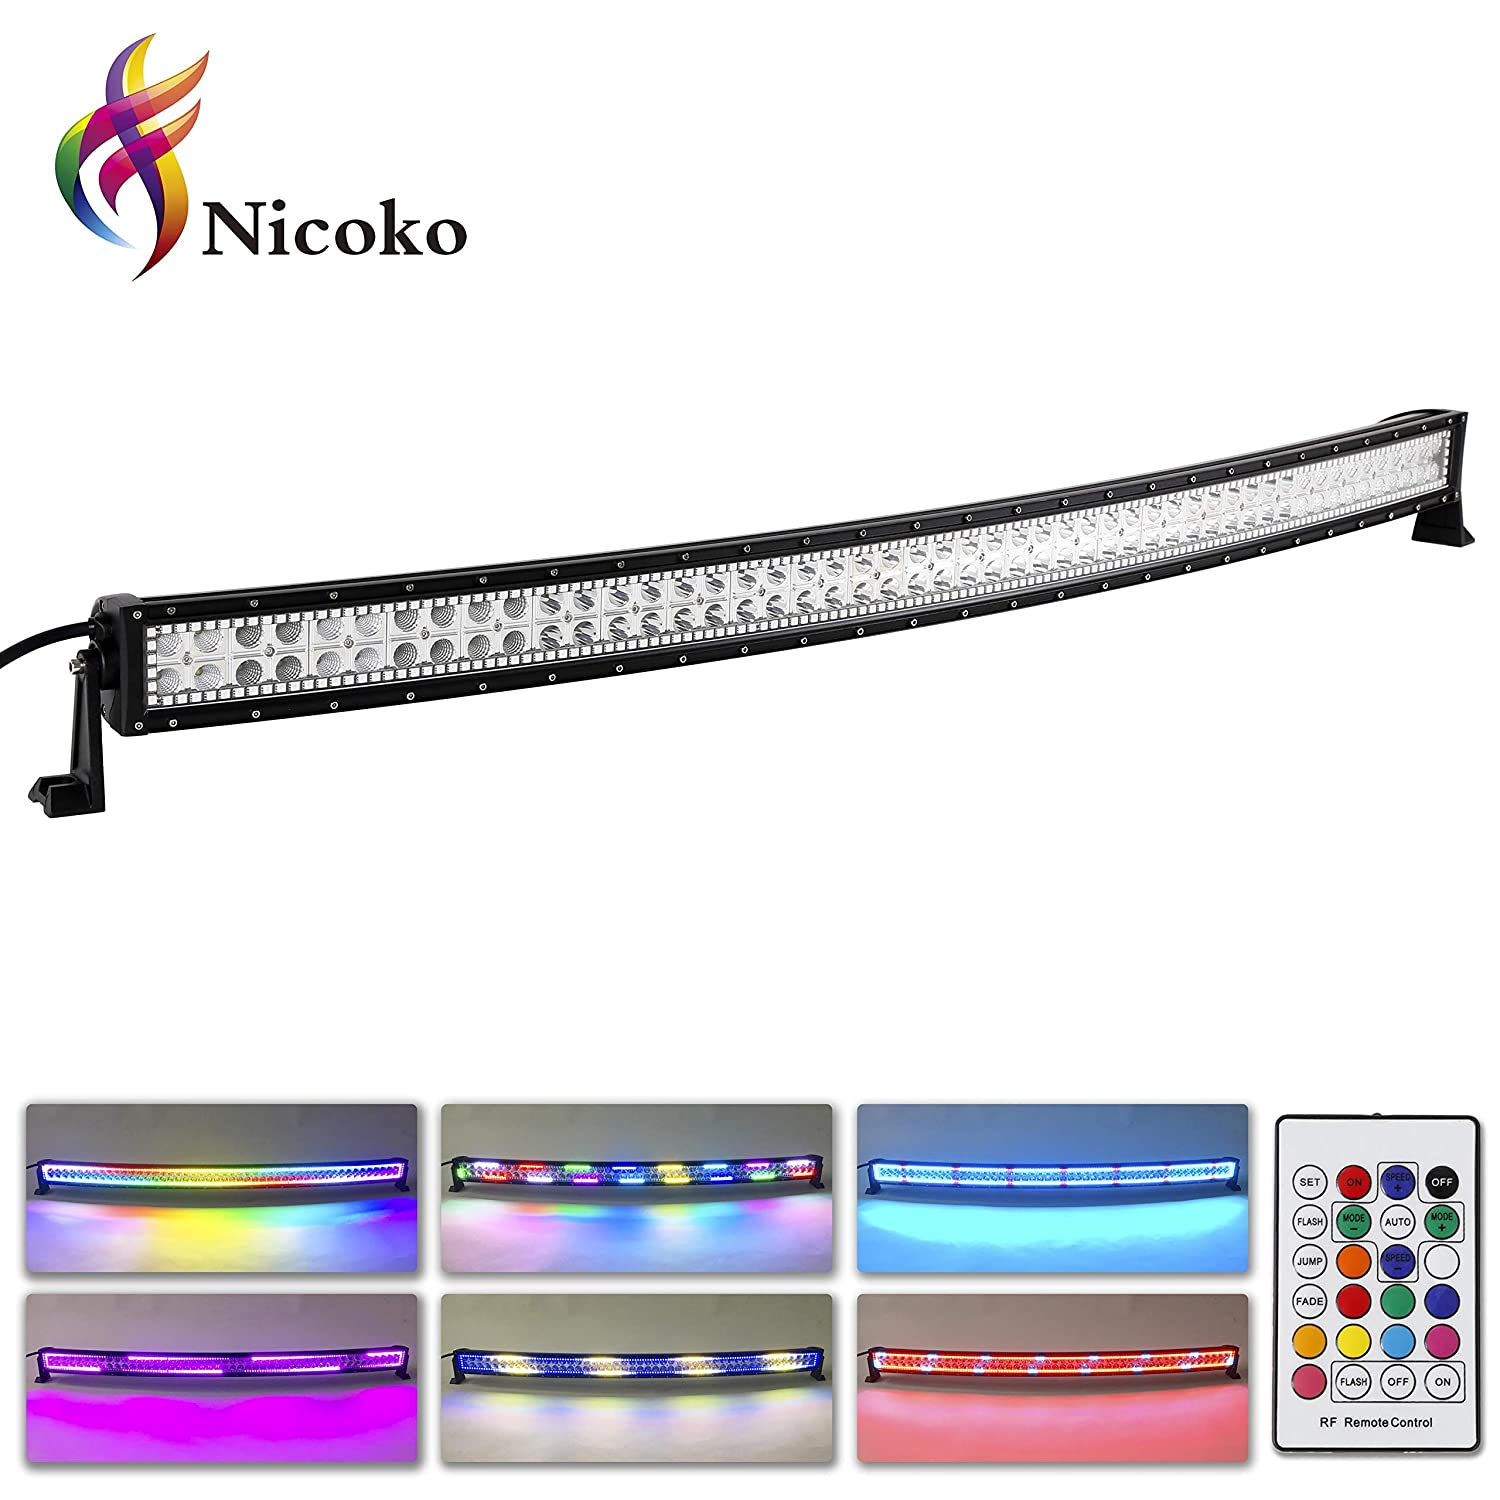 Pack 2 Nicoko 3 18w led work light bar square pods with RGB Chasing Halo 10 solid colors over 72 Flashing modes Driving led Lights Fog Lamp Offroad Lighting for Suv Ute Atv Truck 4x4 Boat